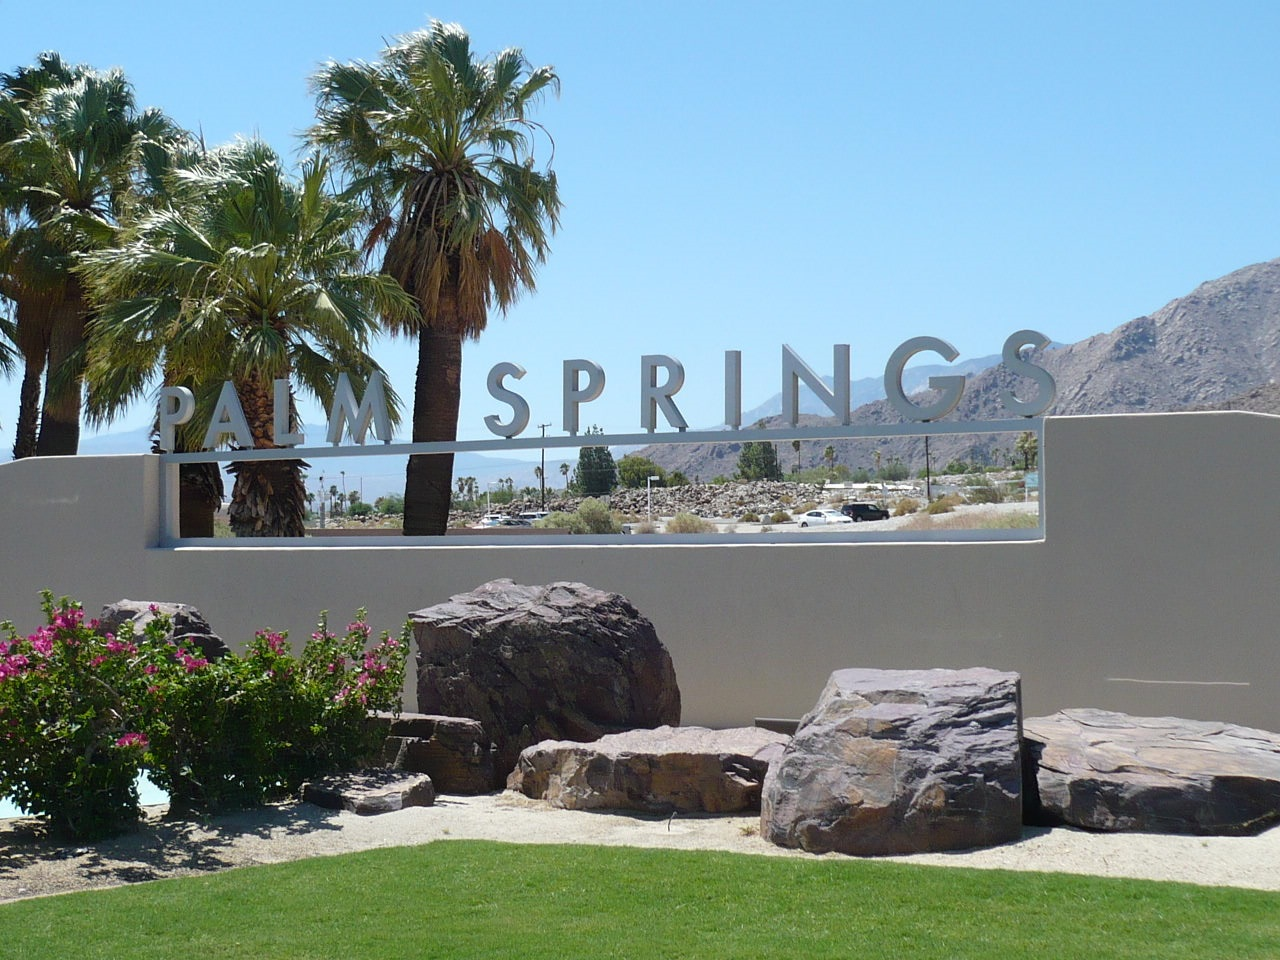 Casino palm springs